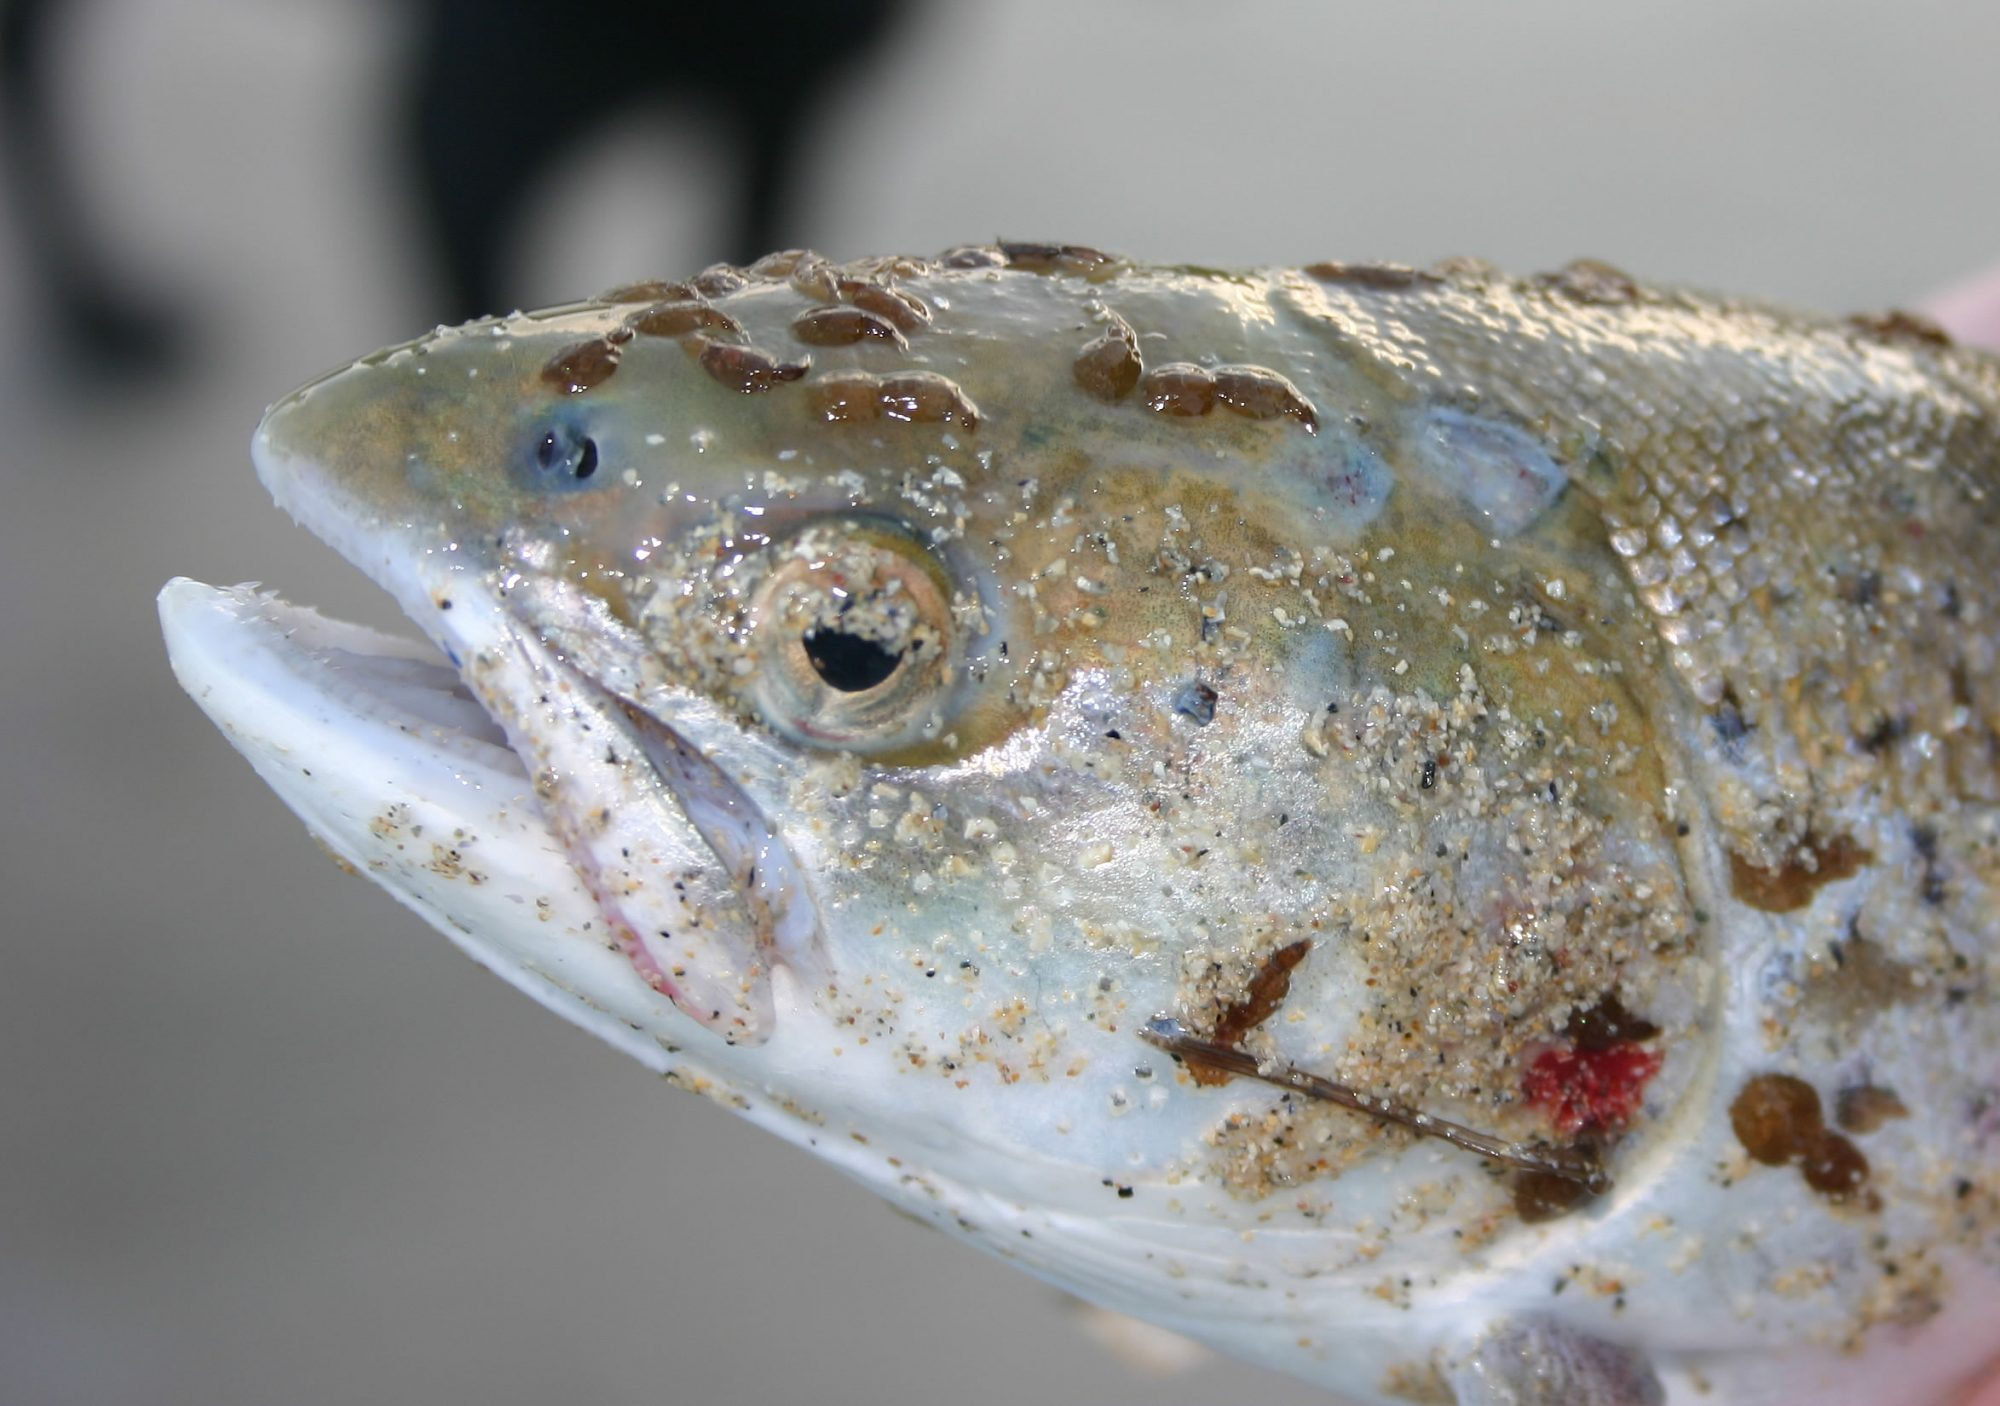 Current salmon farming practices expose wild salmon and sea trout to unnaturally high volumes of sea lice